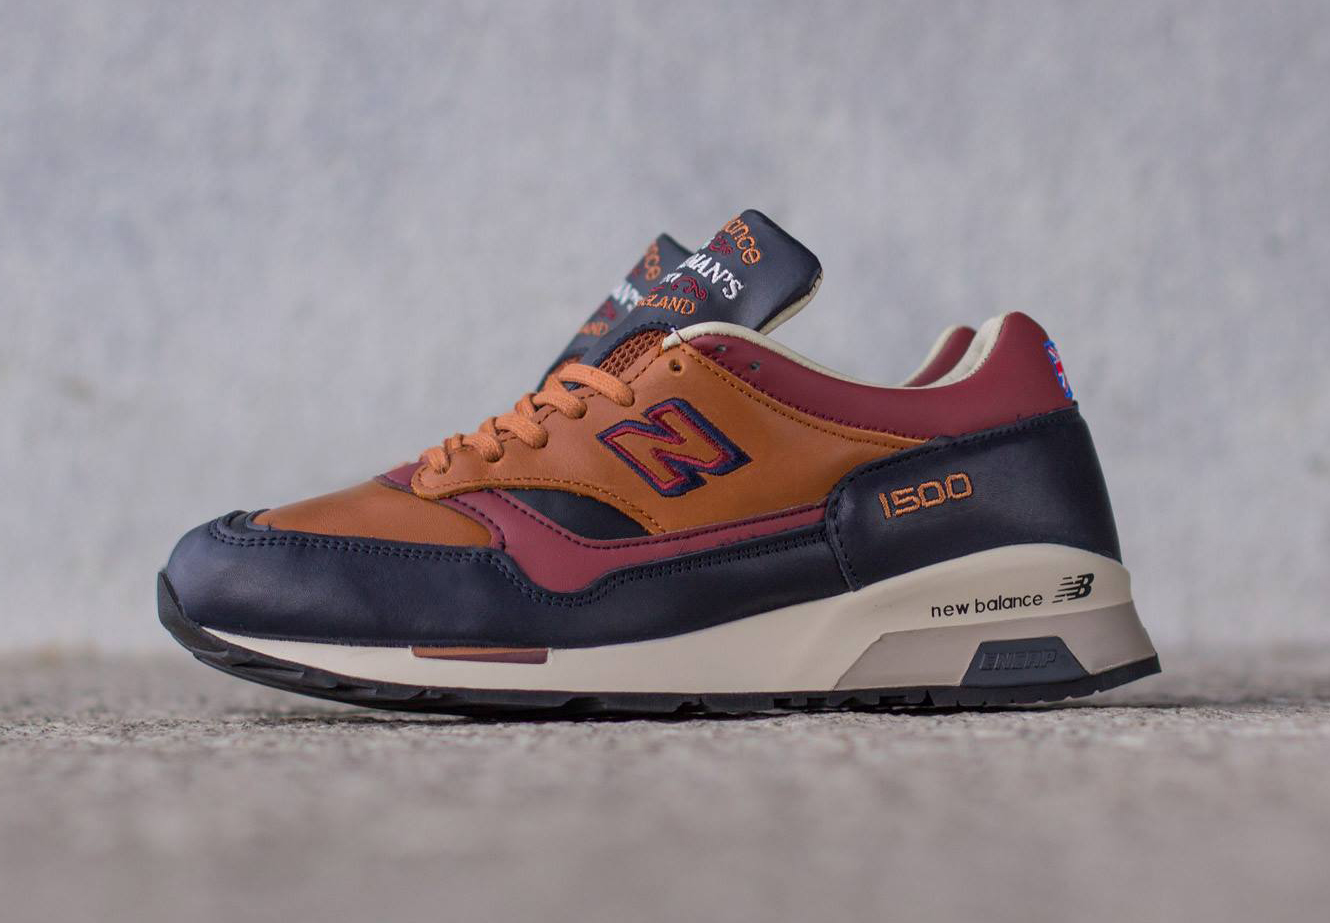 new balance 1500 curry leather